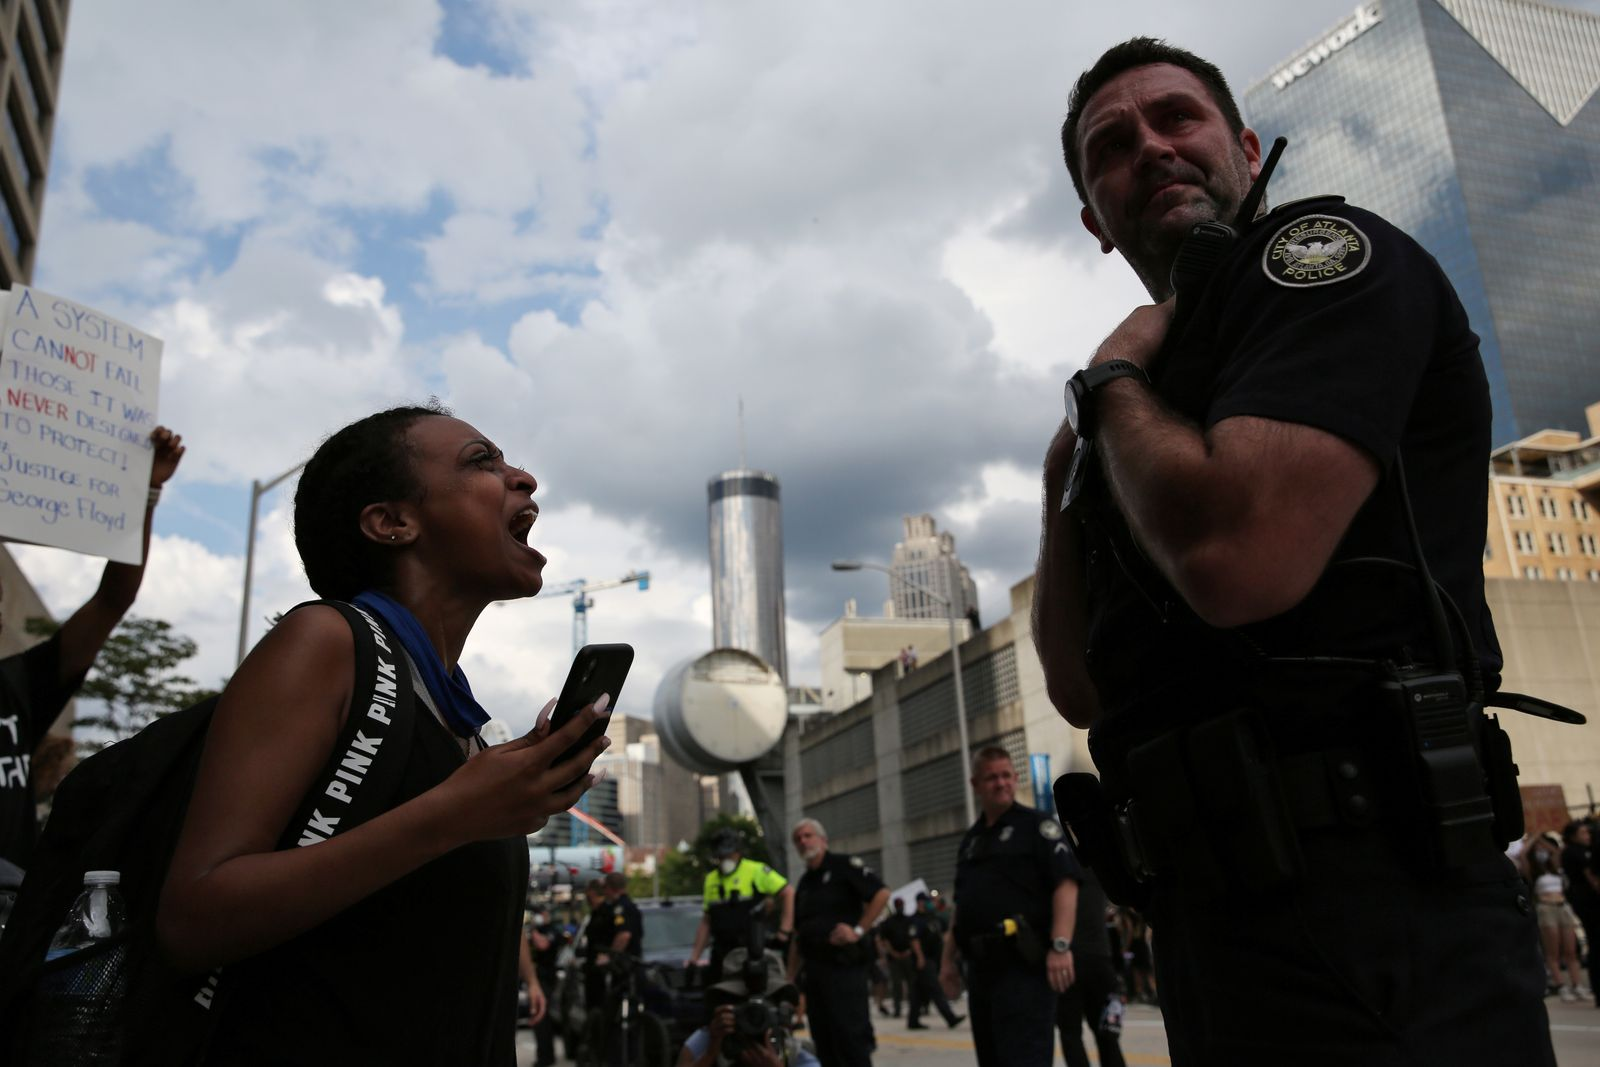 A woman yells at a cop during a protest in Atlanta